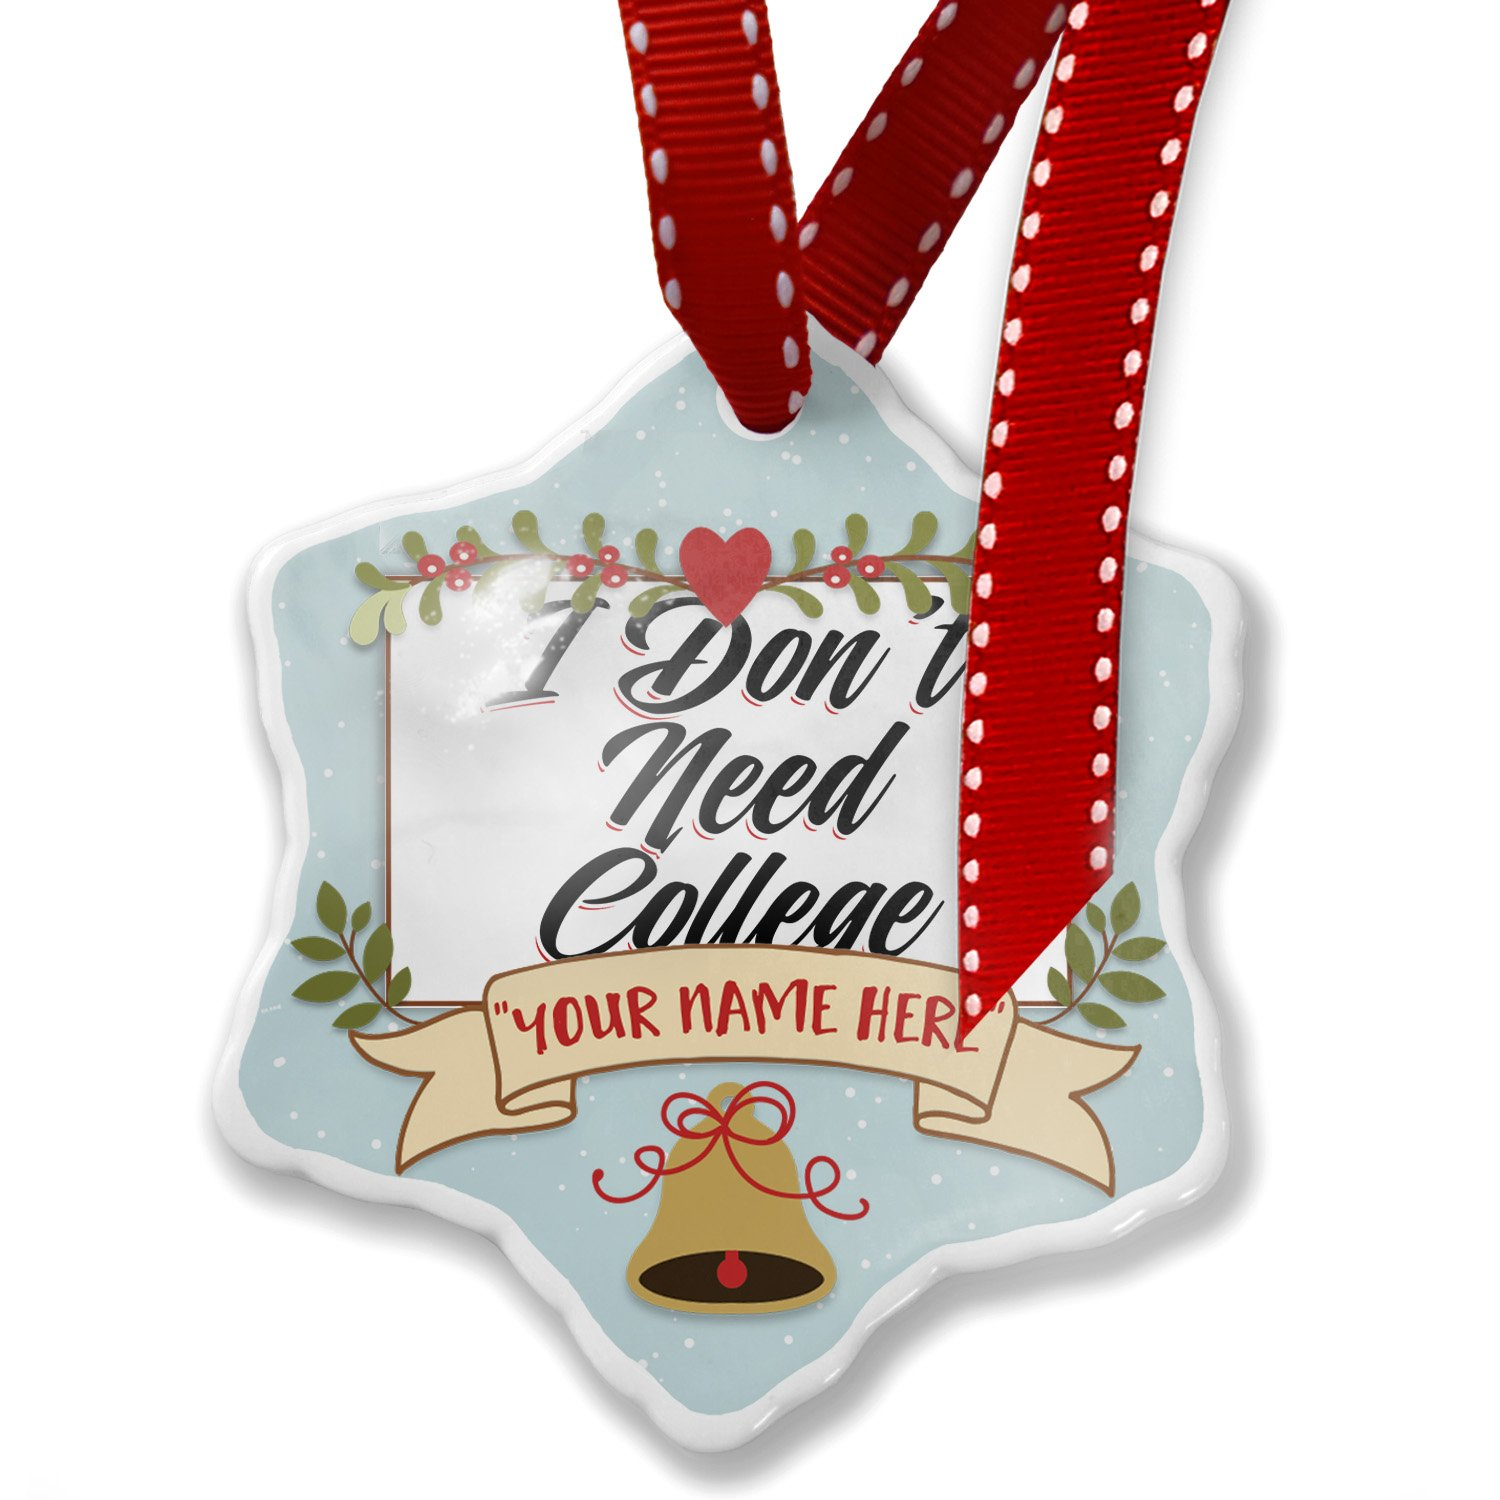 Add Your Own Custom Name, Vintage Lettering I Don't Need College Christmas Ornament NEONBLOND